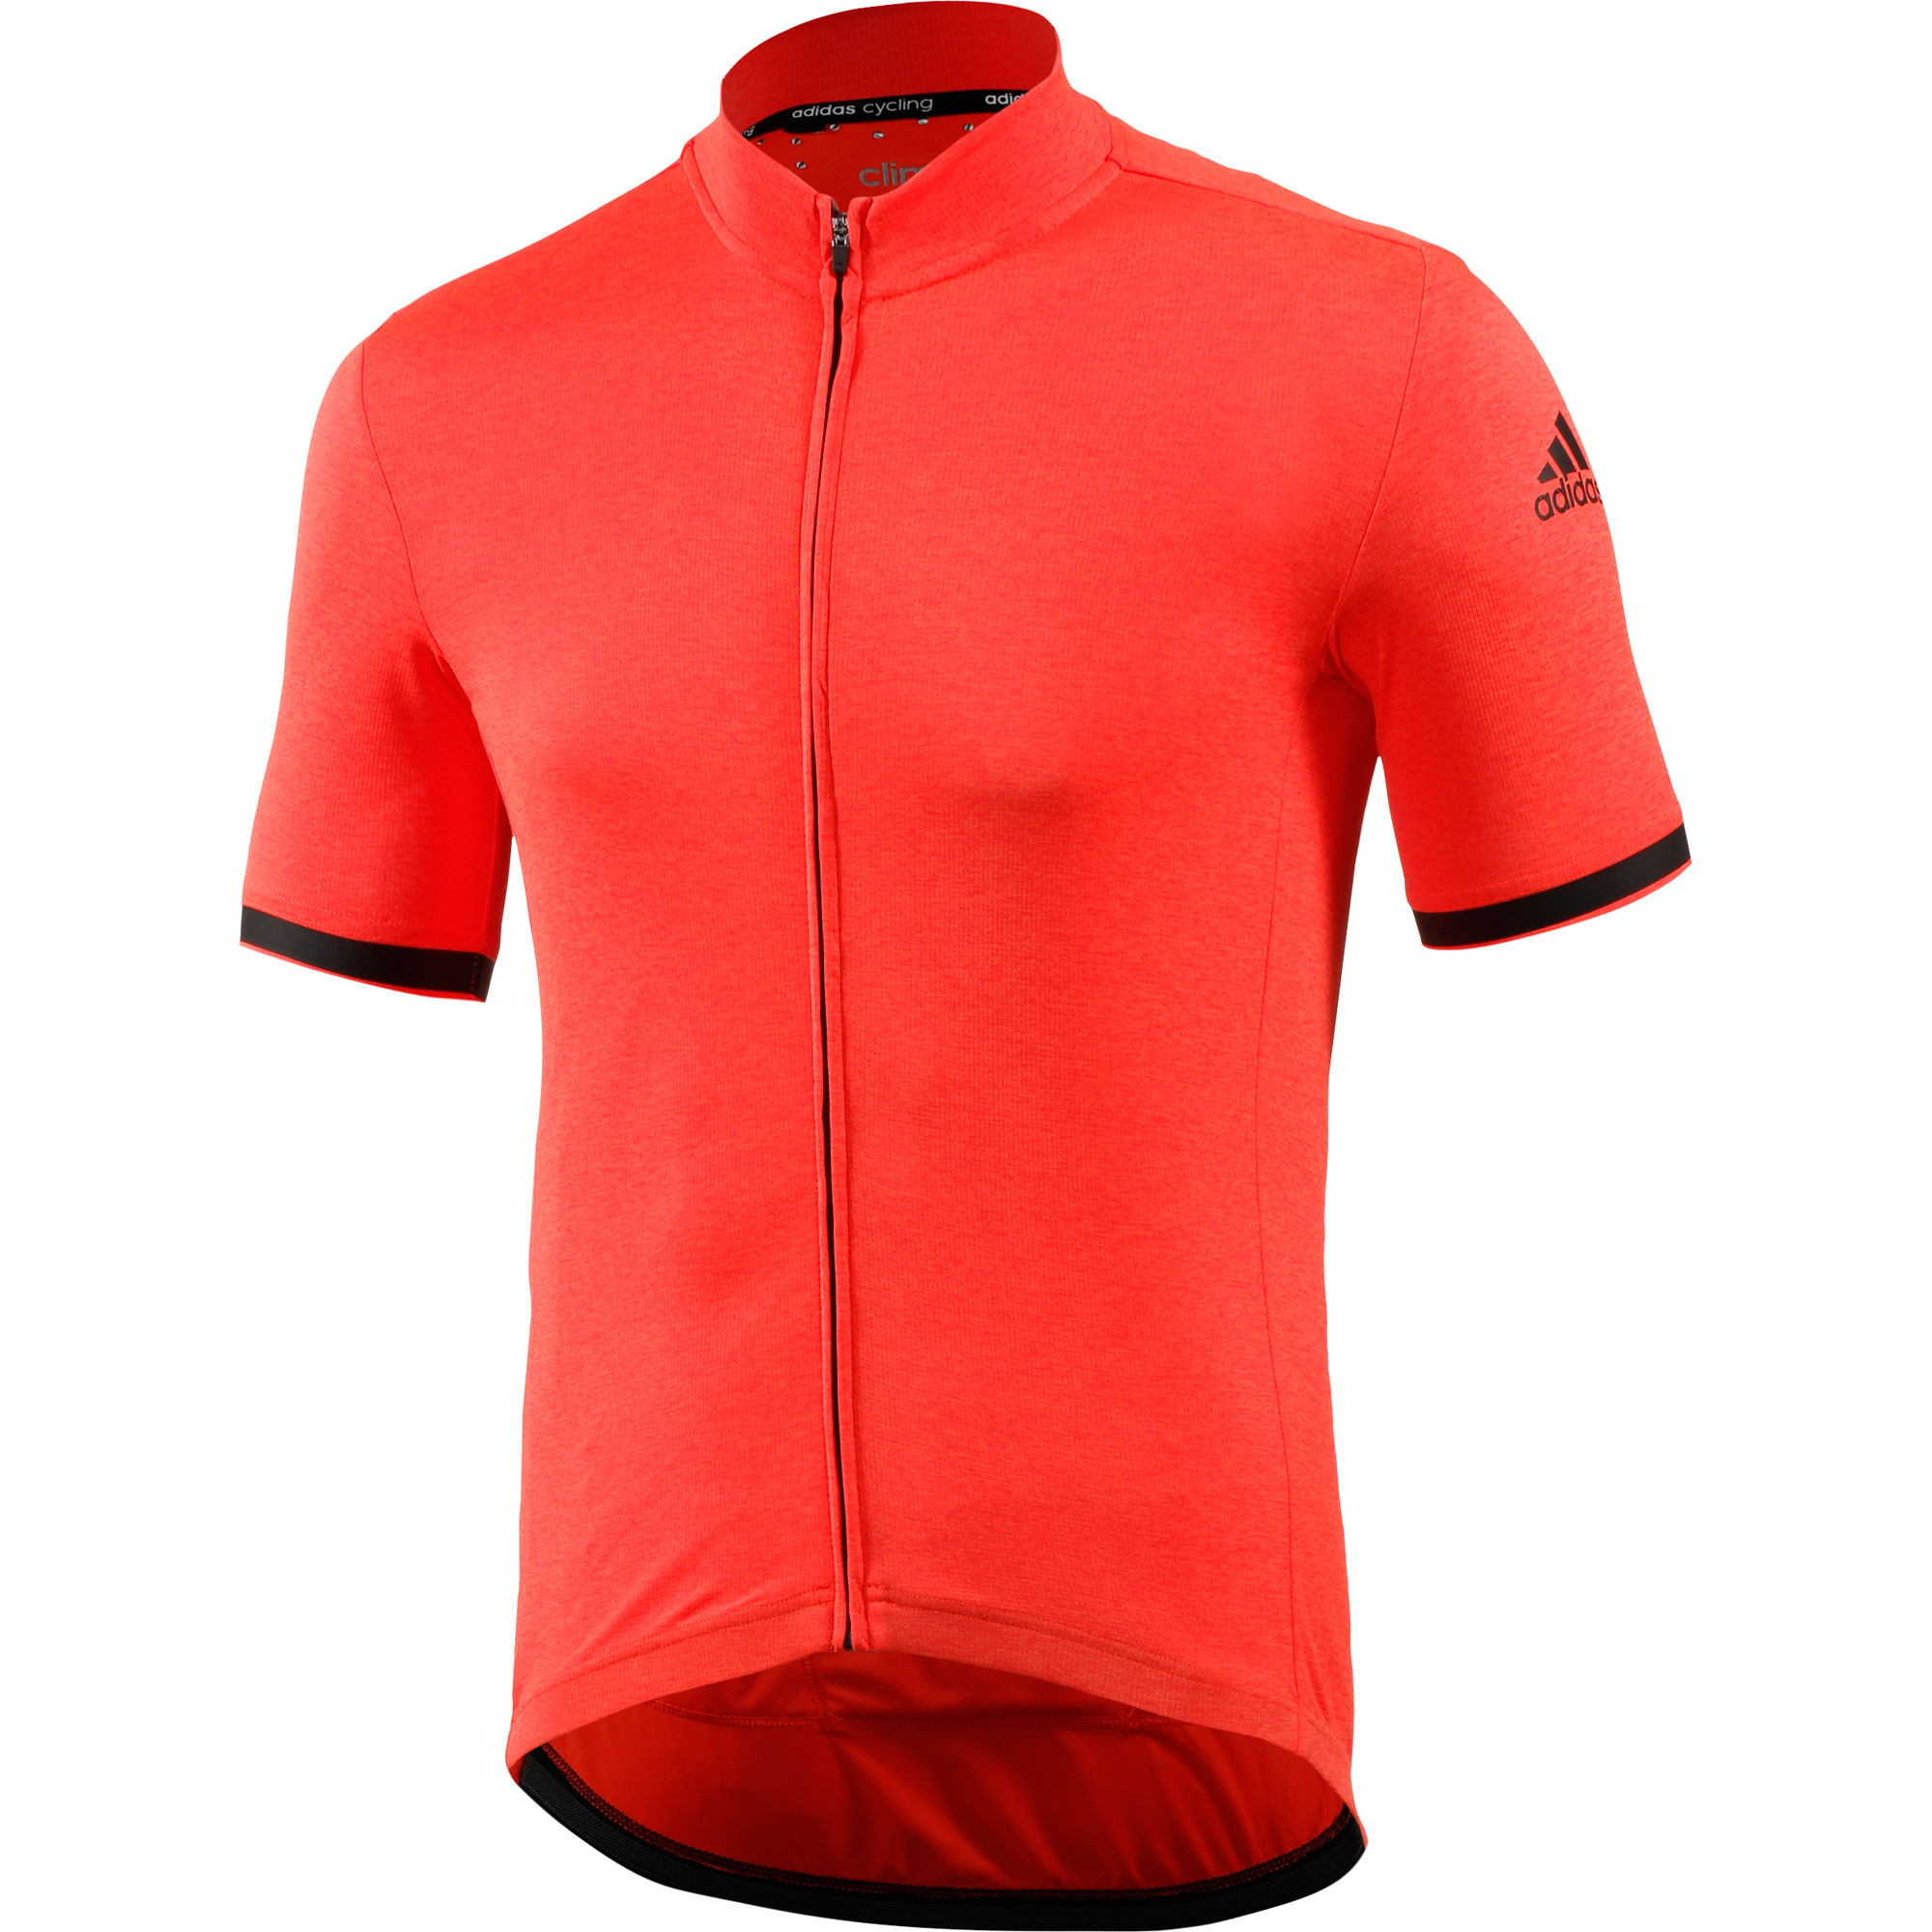 2839b8e82 Wiggle Cycle To Work | adidas Cycling Supernova Climachill Short ...